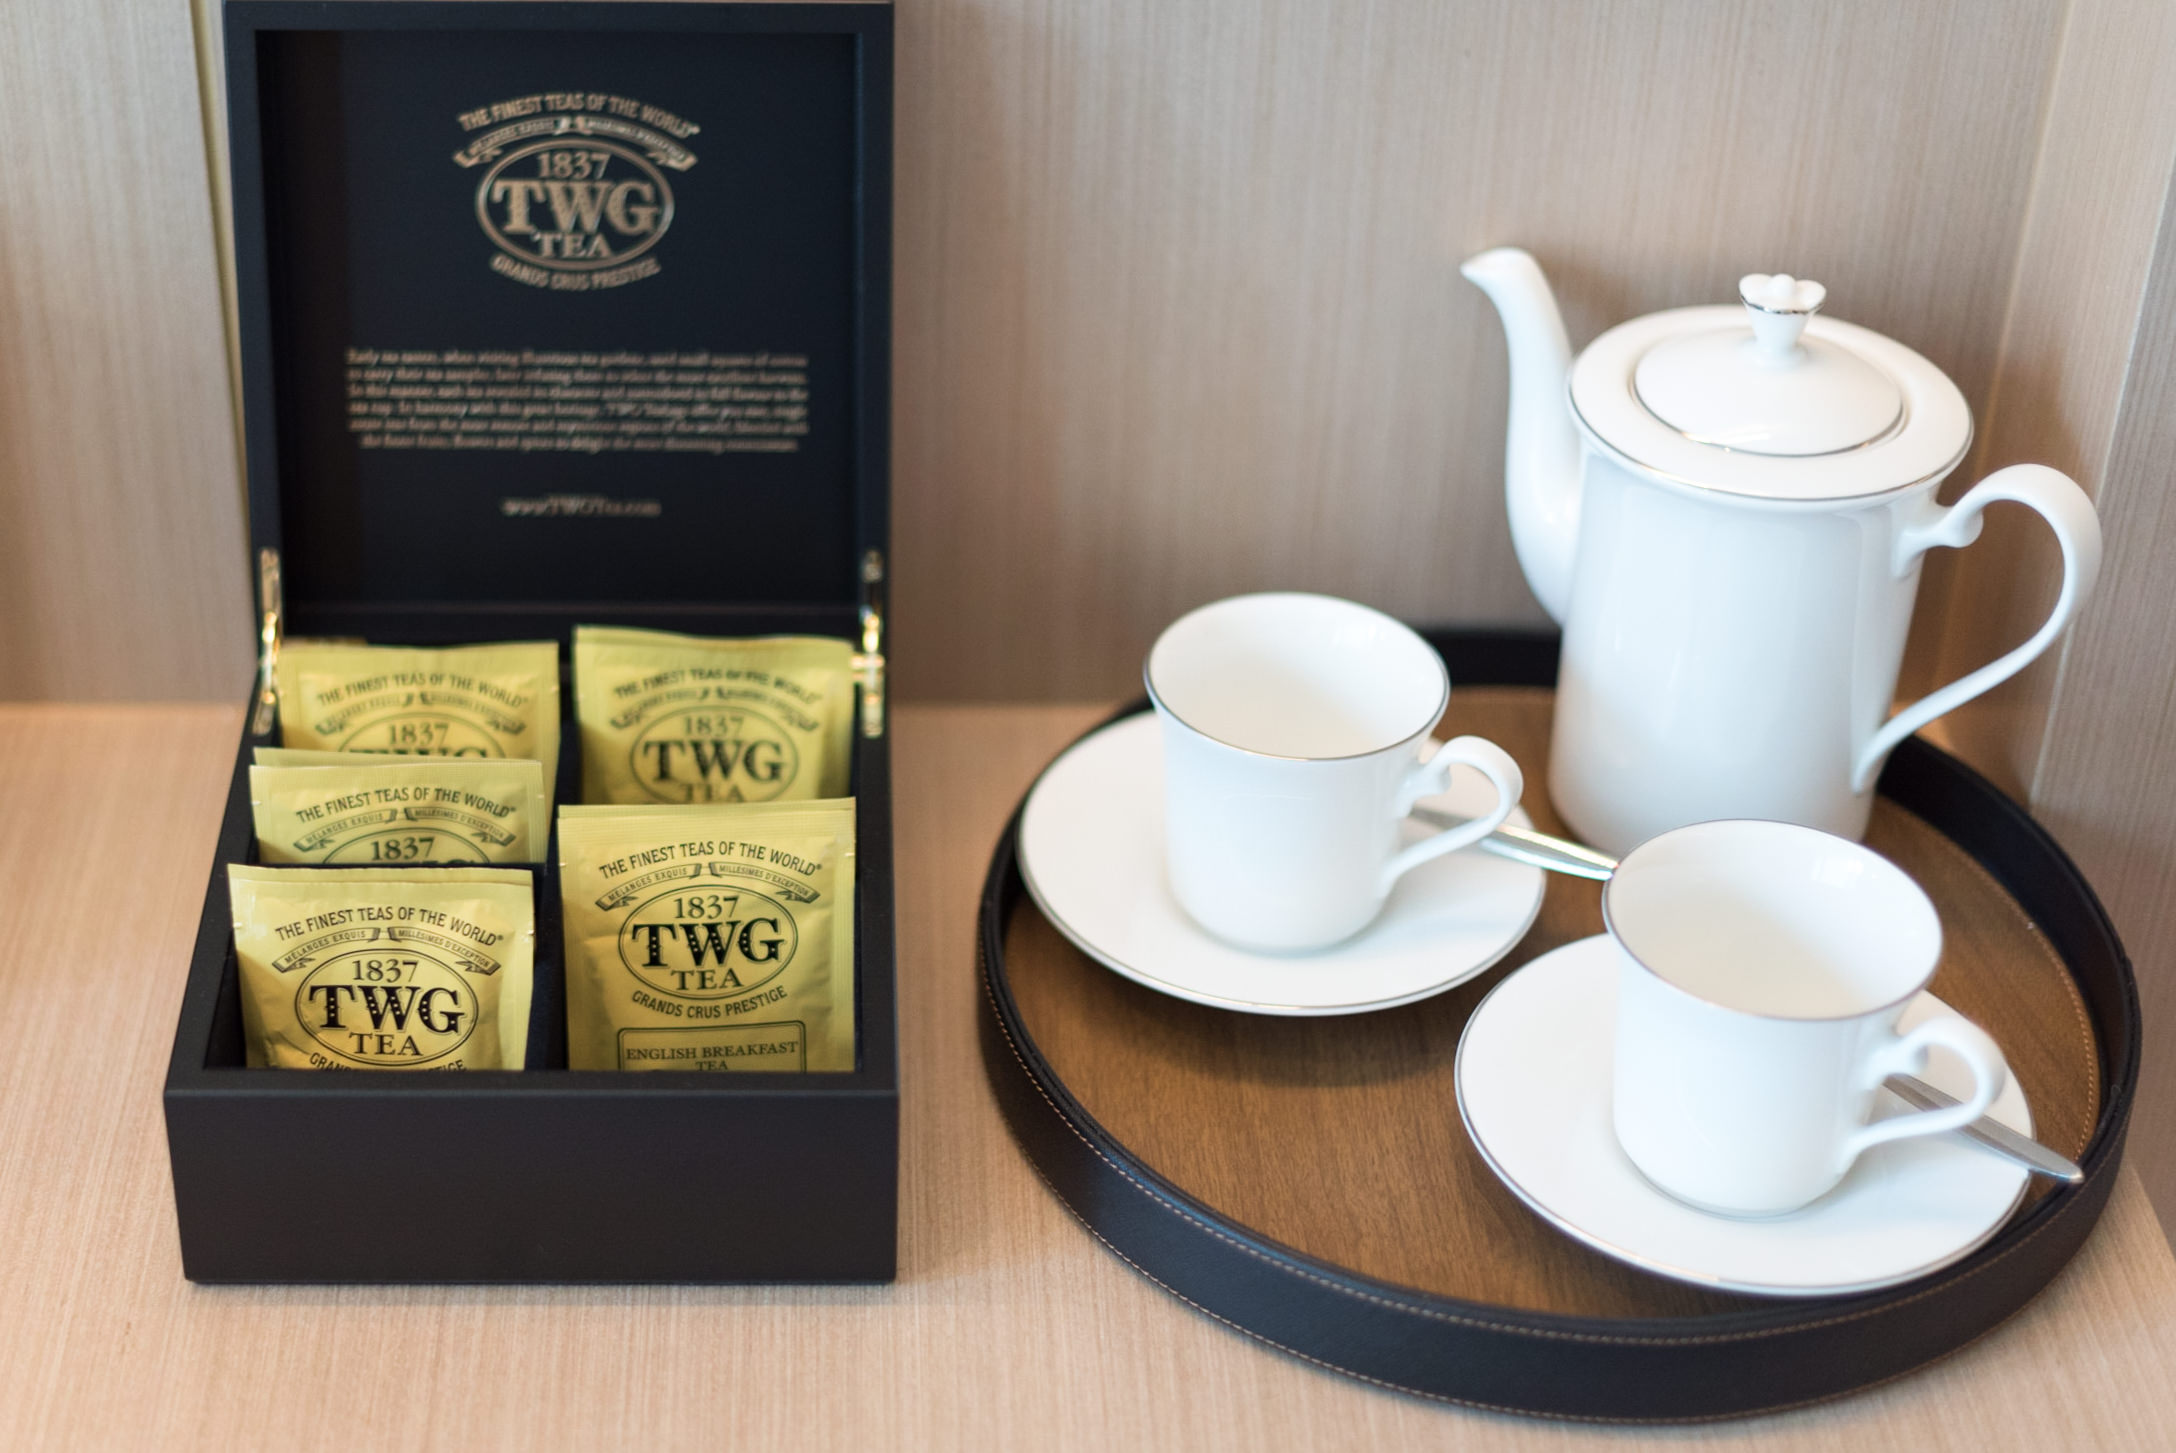 TWG Teabags and Nespresso Coffee  Luxury Room - Sofitel Singapore City Centre